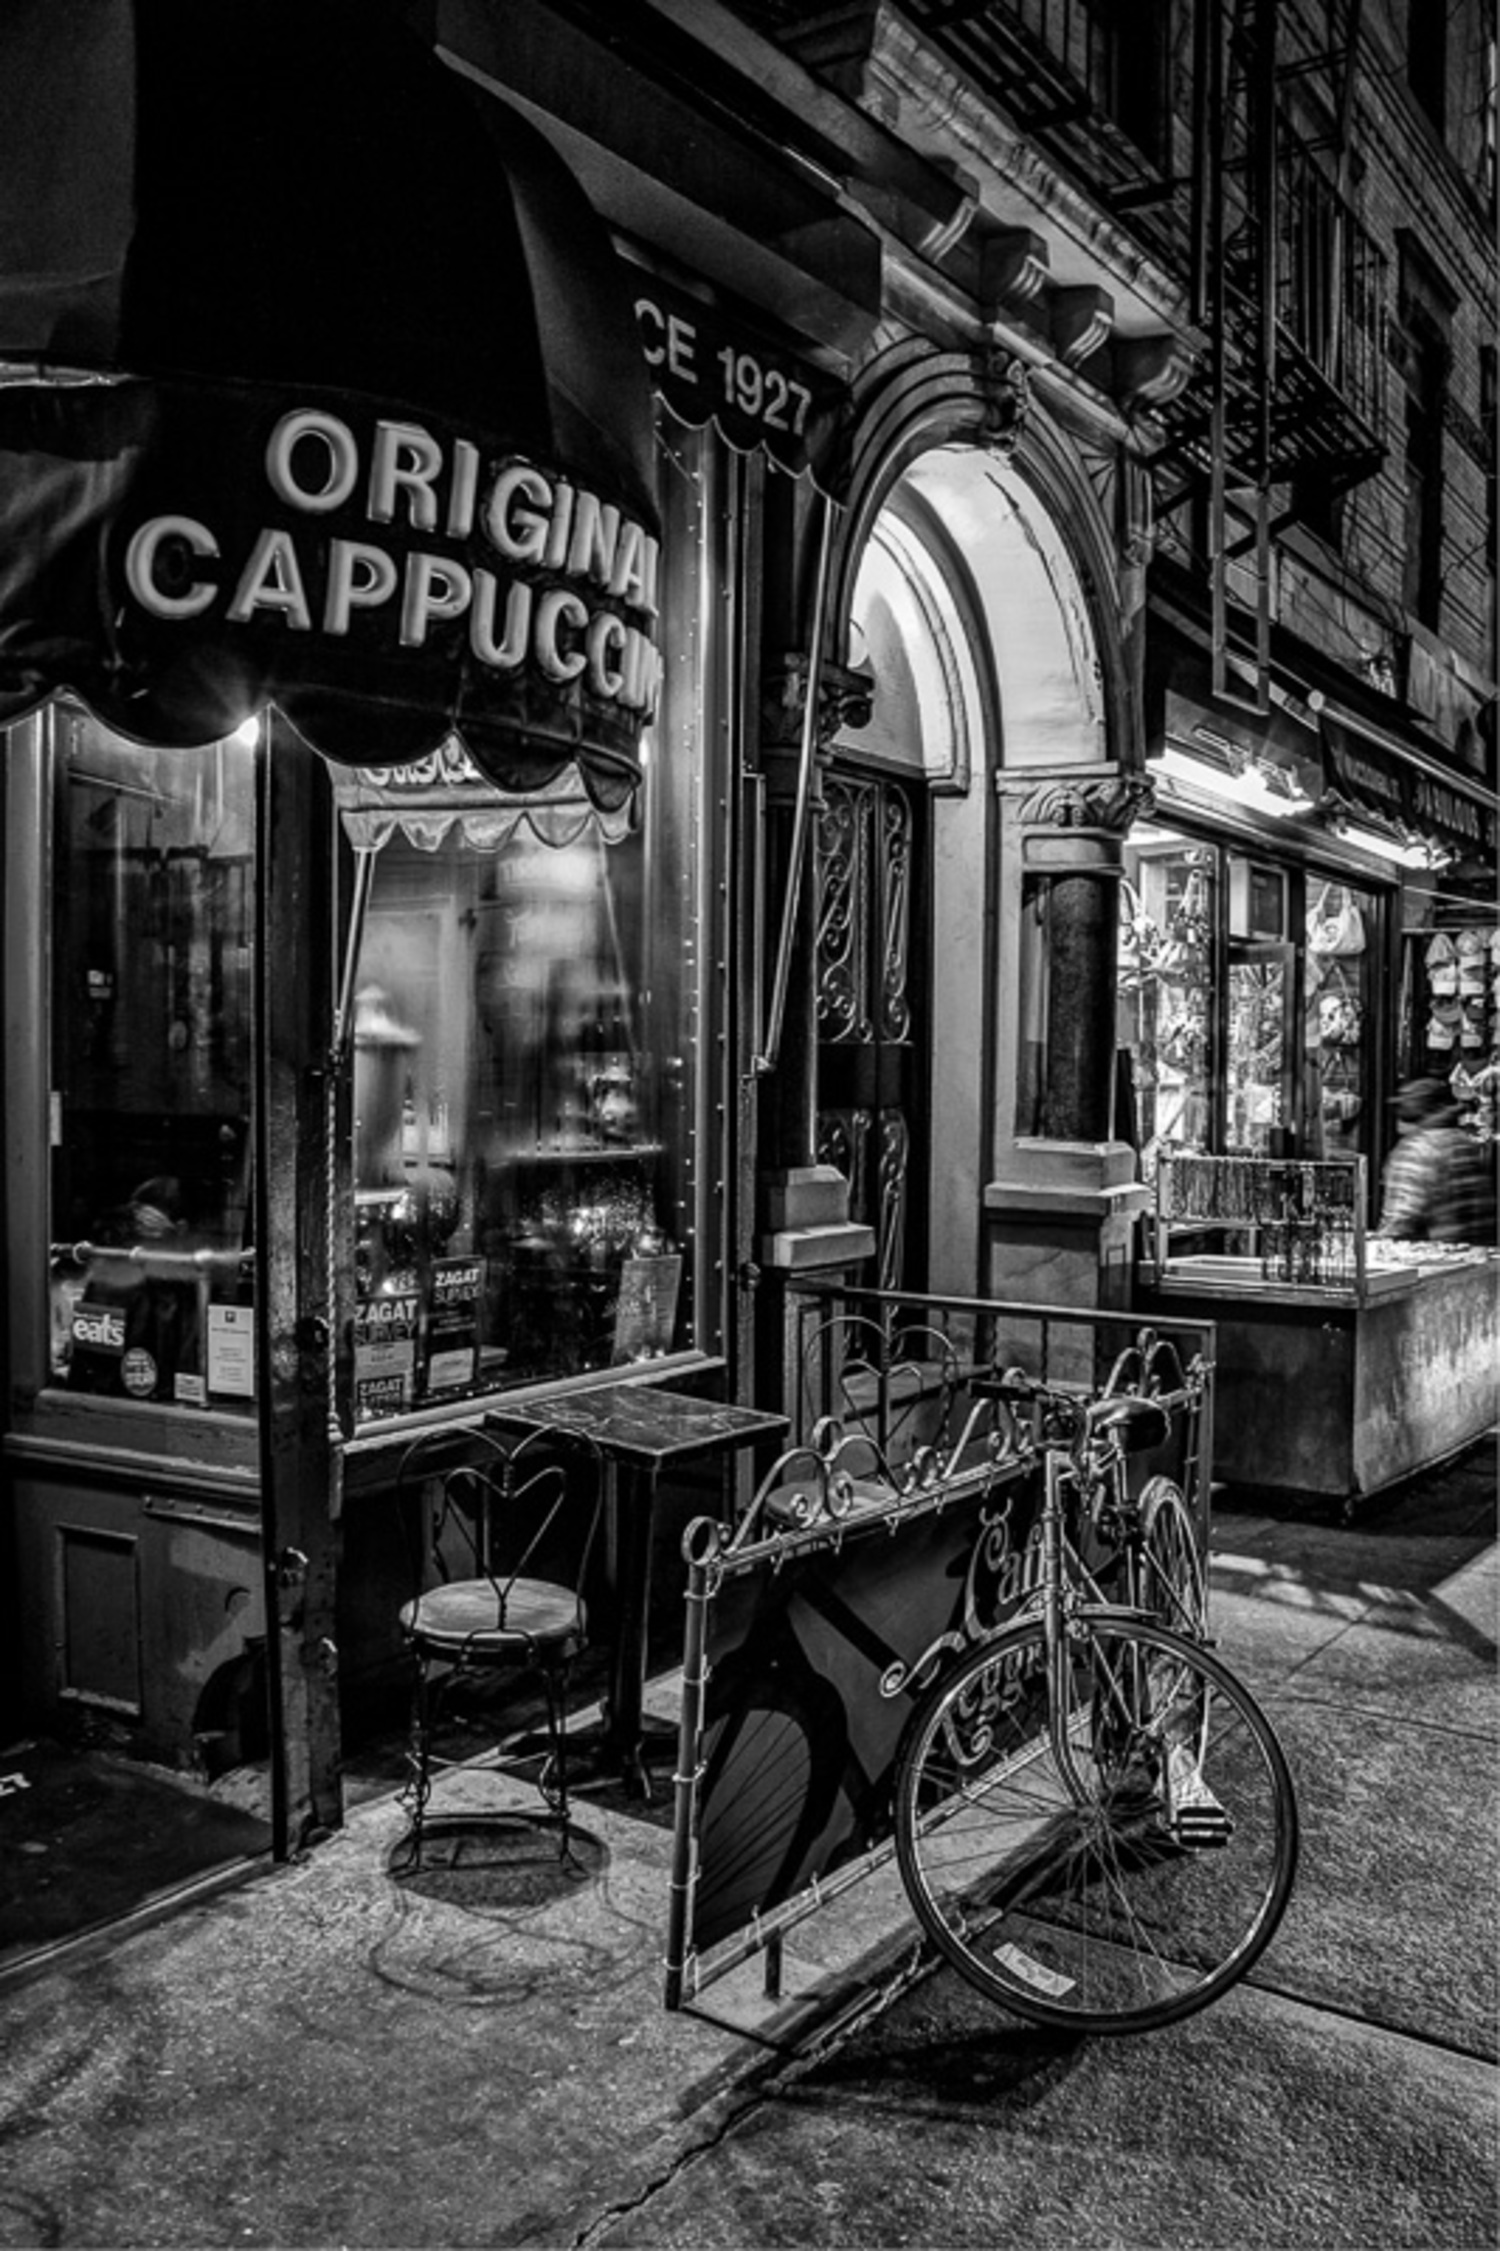 Cafe Reggio - Greenwich Village